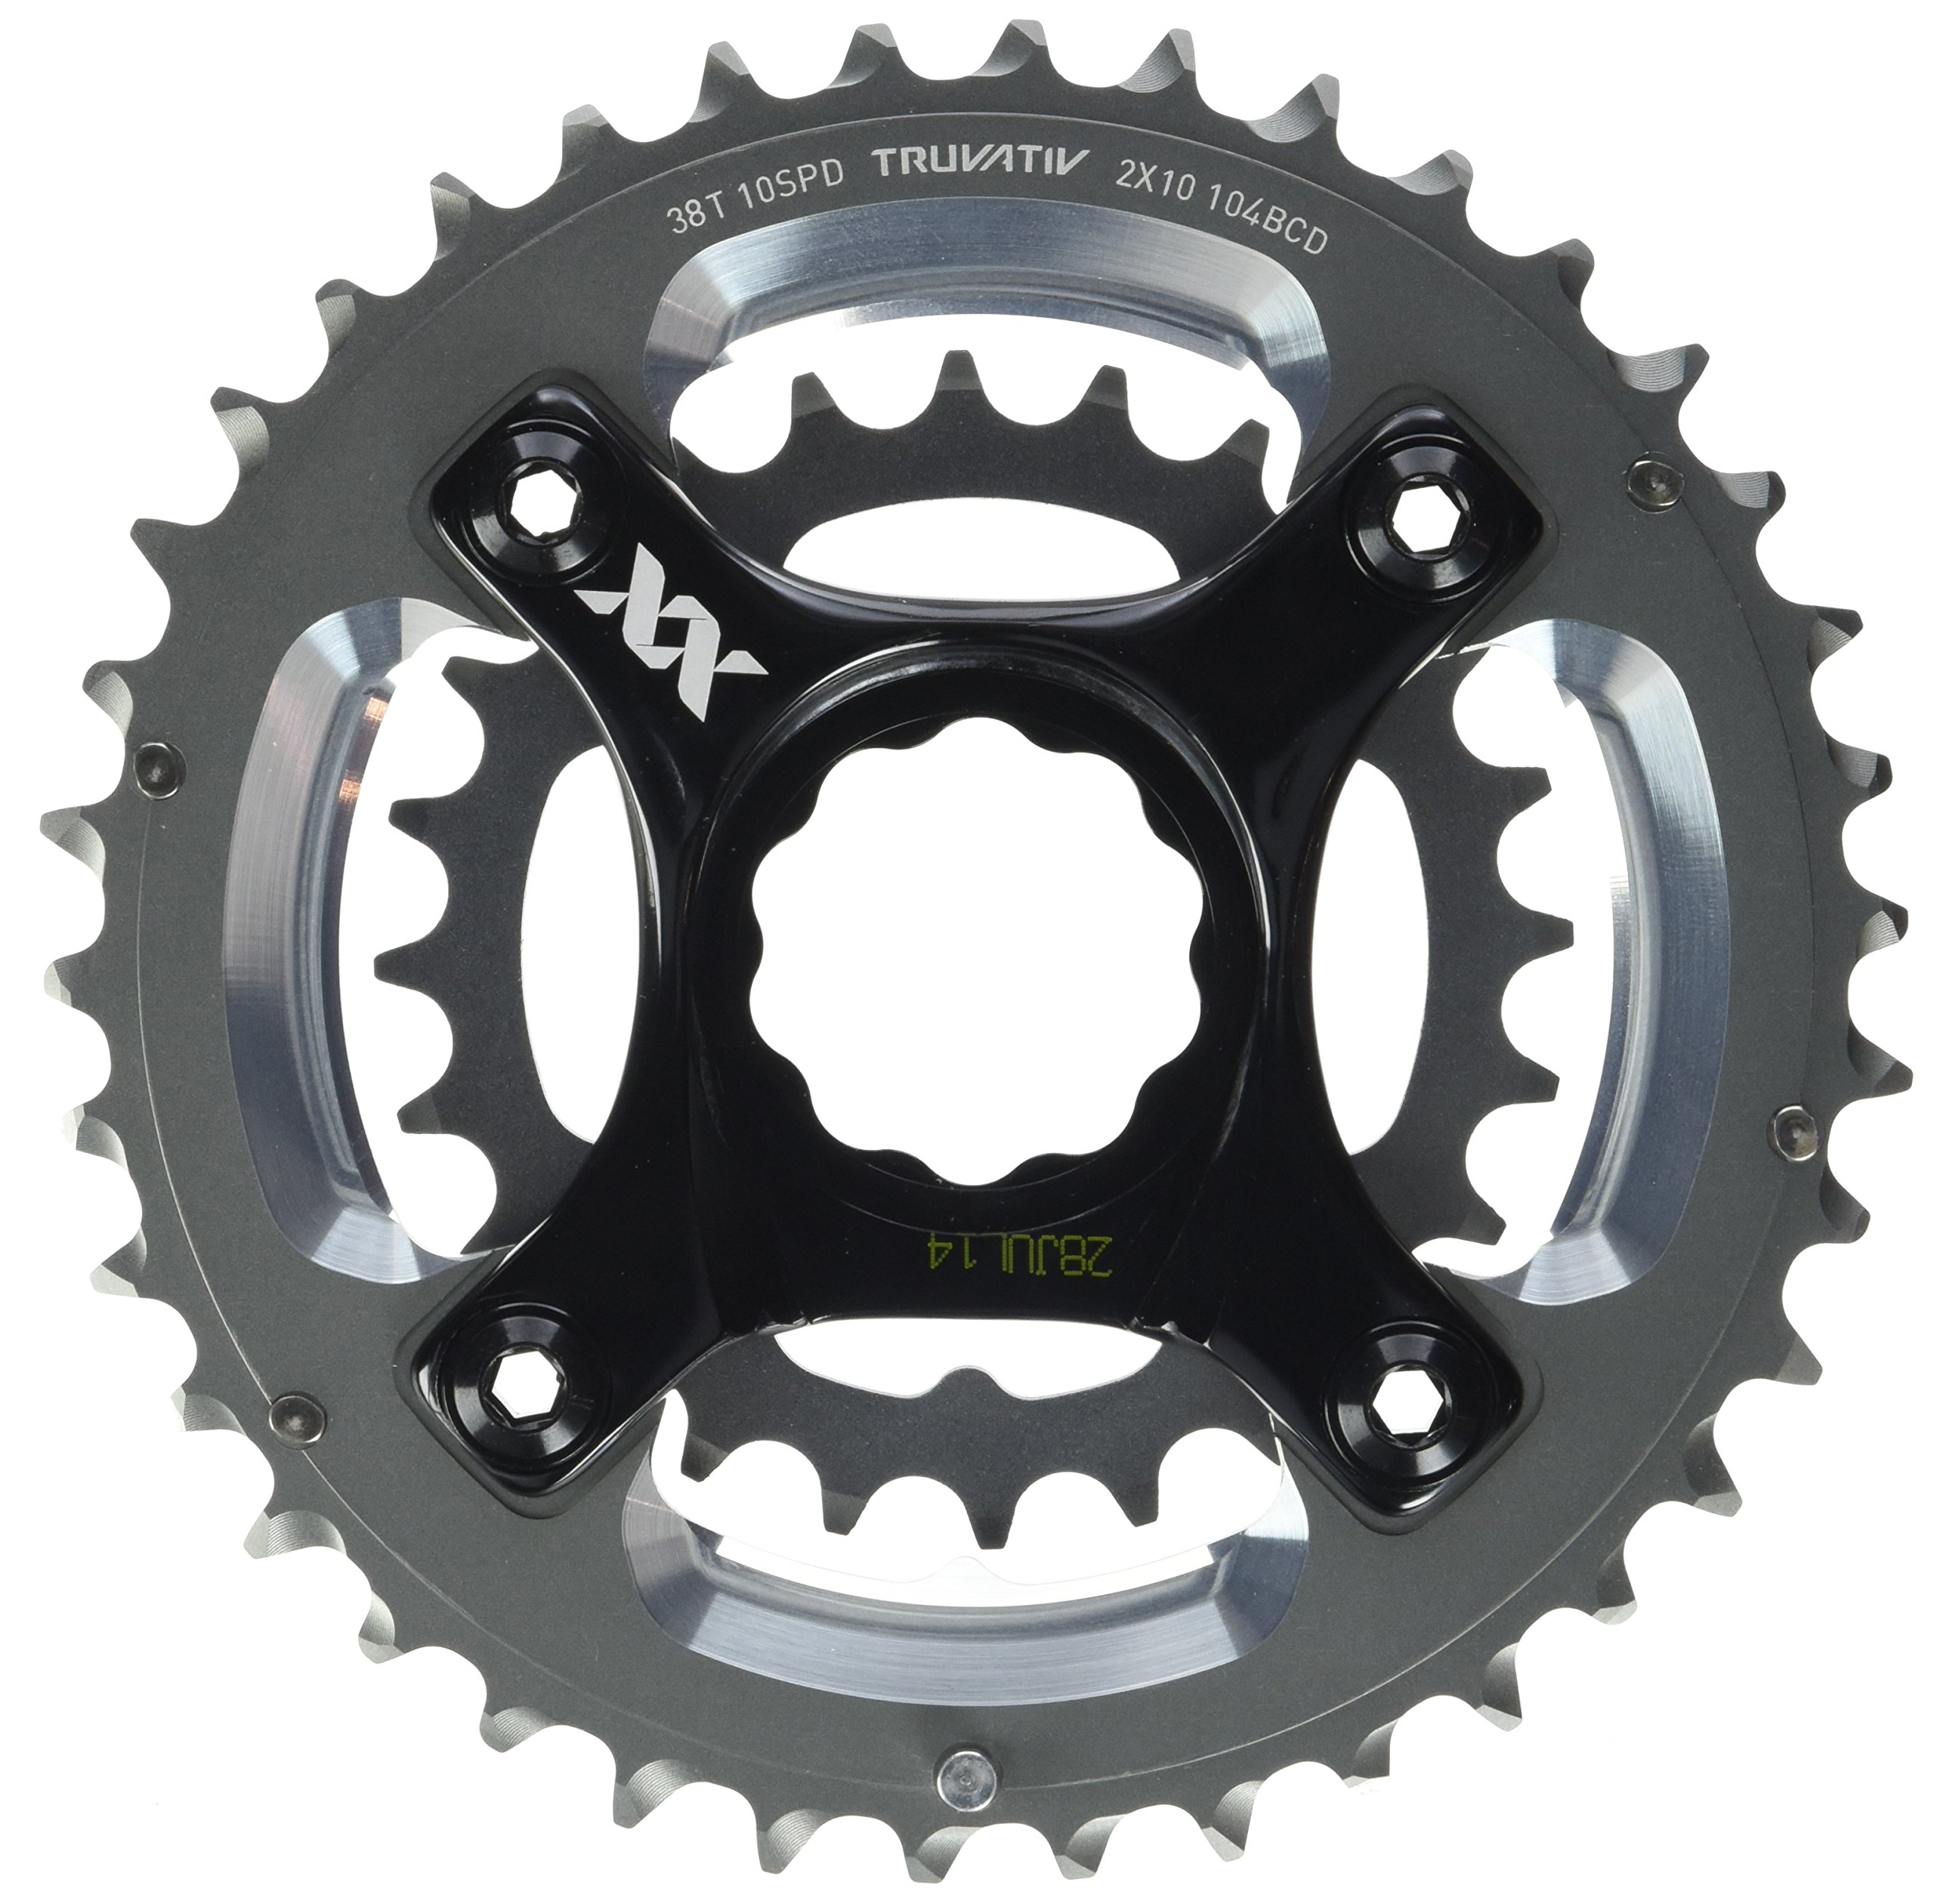 Truvativ Truvativ Crank 10-speed Chainring Set 38-24t with X9 Specialized GXP Spider 49 Chainline 104/64 BCD Chainrings [104 BCD] by Truvativ (Image #2)